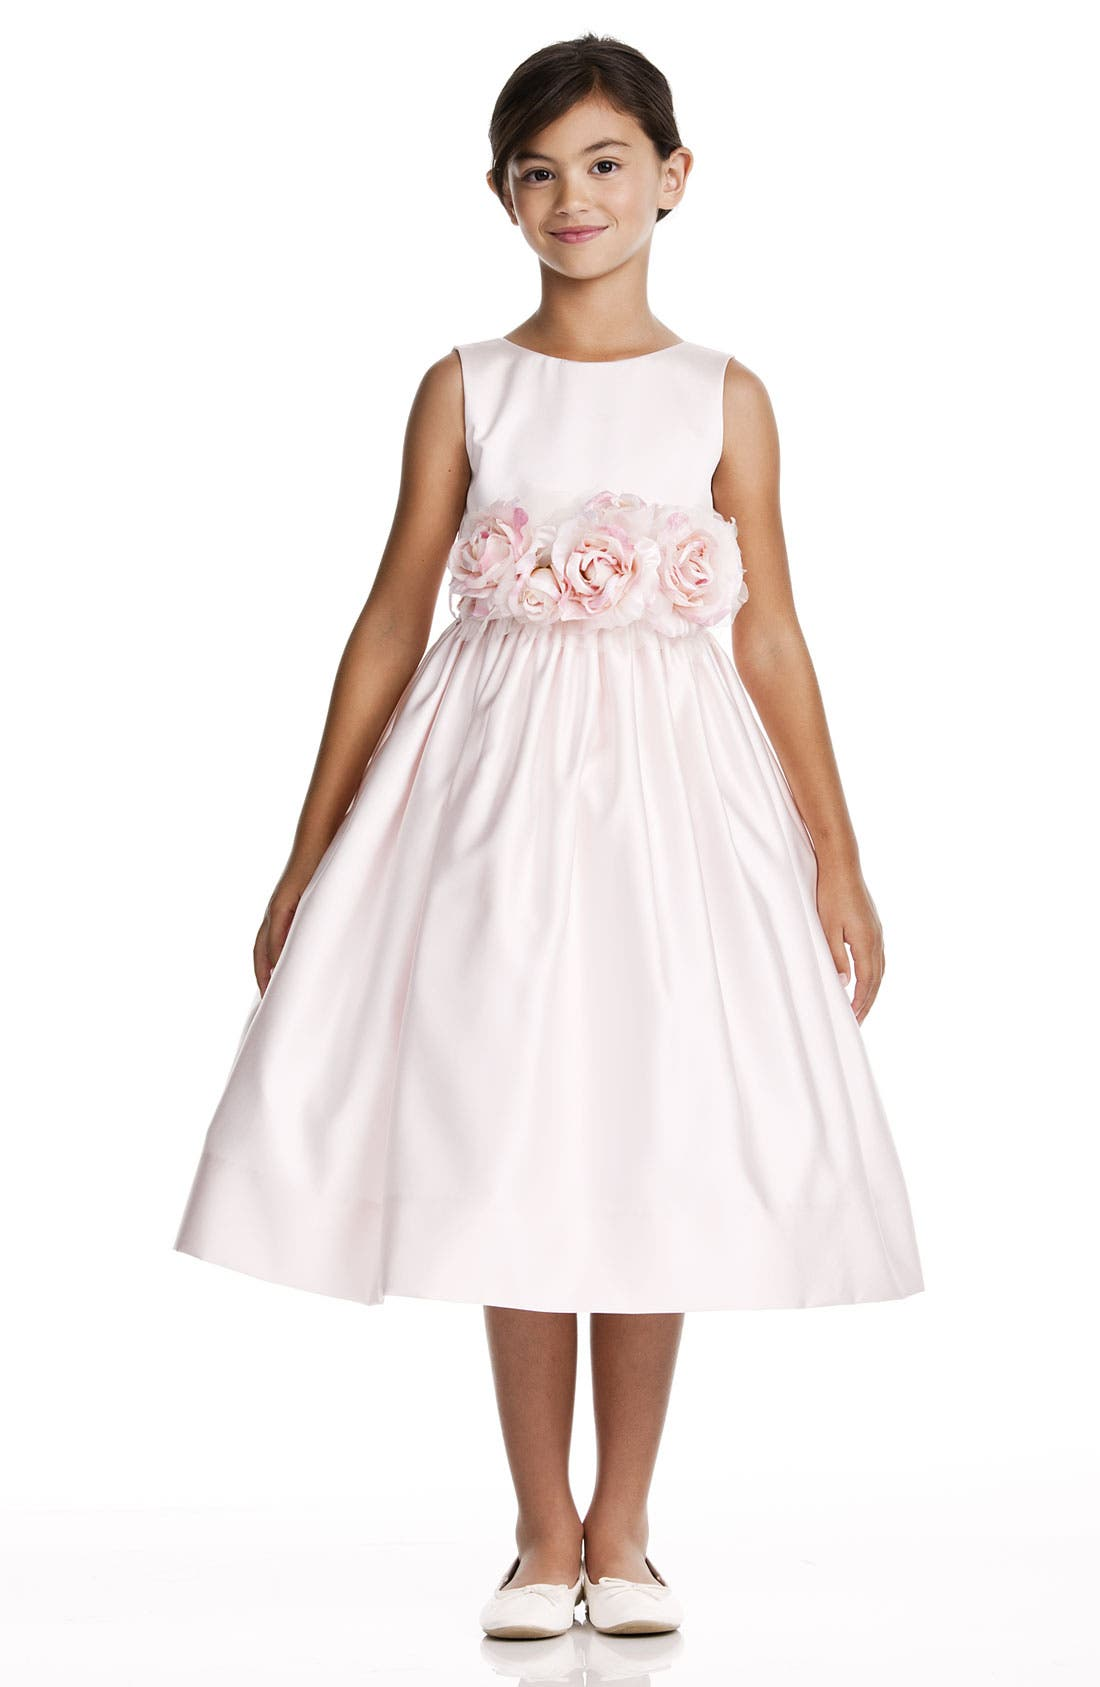 Alternate Image 1 Selected - Us Angels Flower Sash Sleeveless Dress (Toddler Girls)